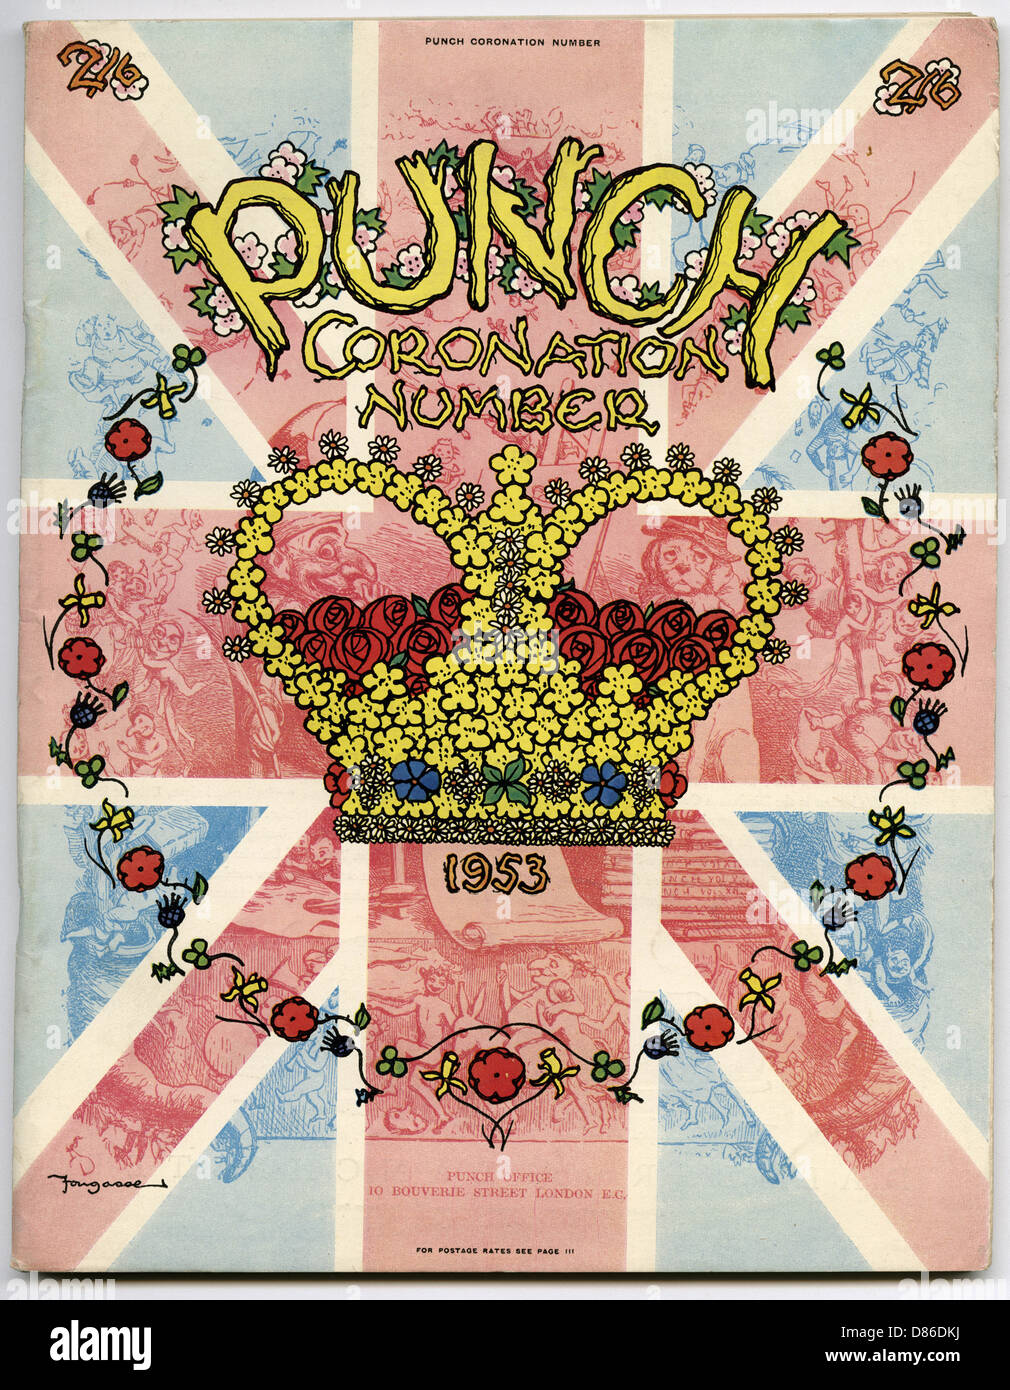 Front Cover For Punch Coronation Number 1953 - Stock Image